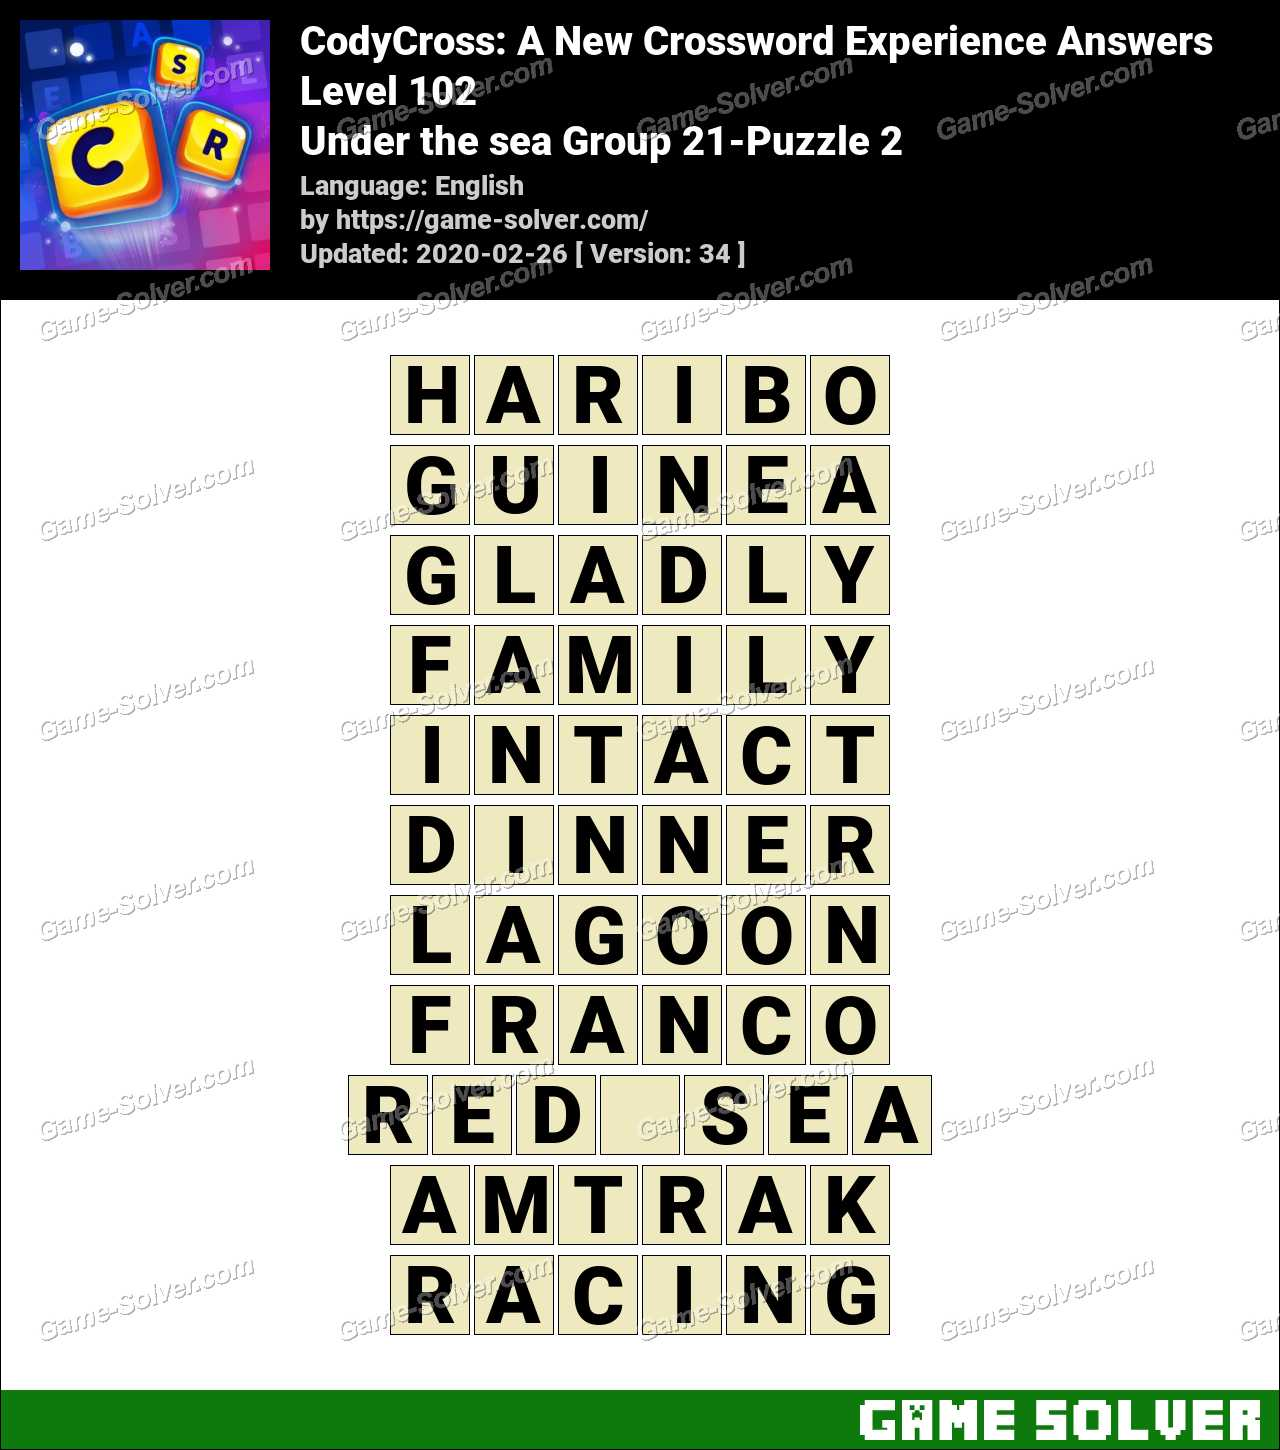 CodyCross Under the sea Group 21-Puzzle 2 Answers